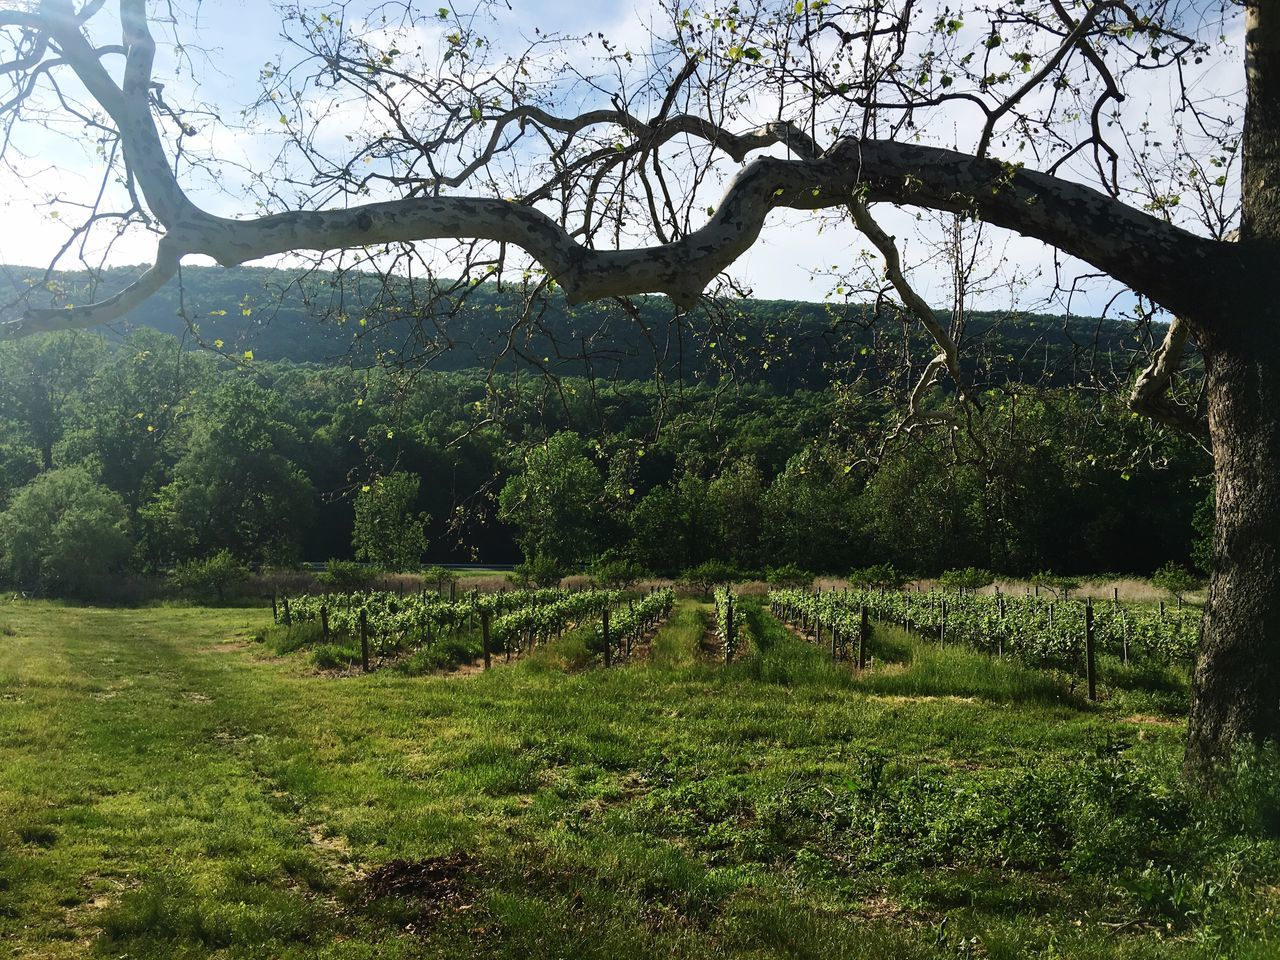 A beautiful day in a fun vineyard